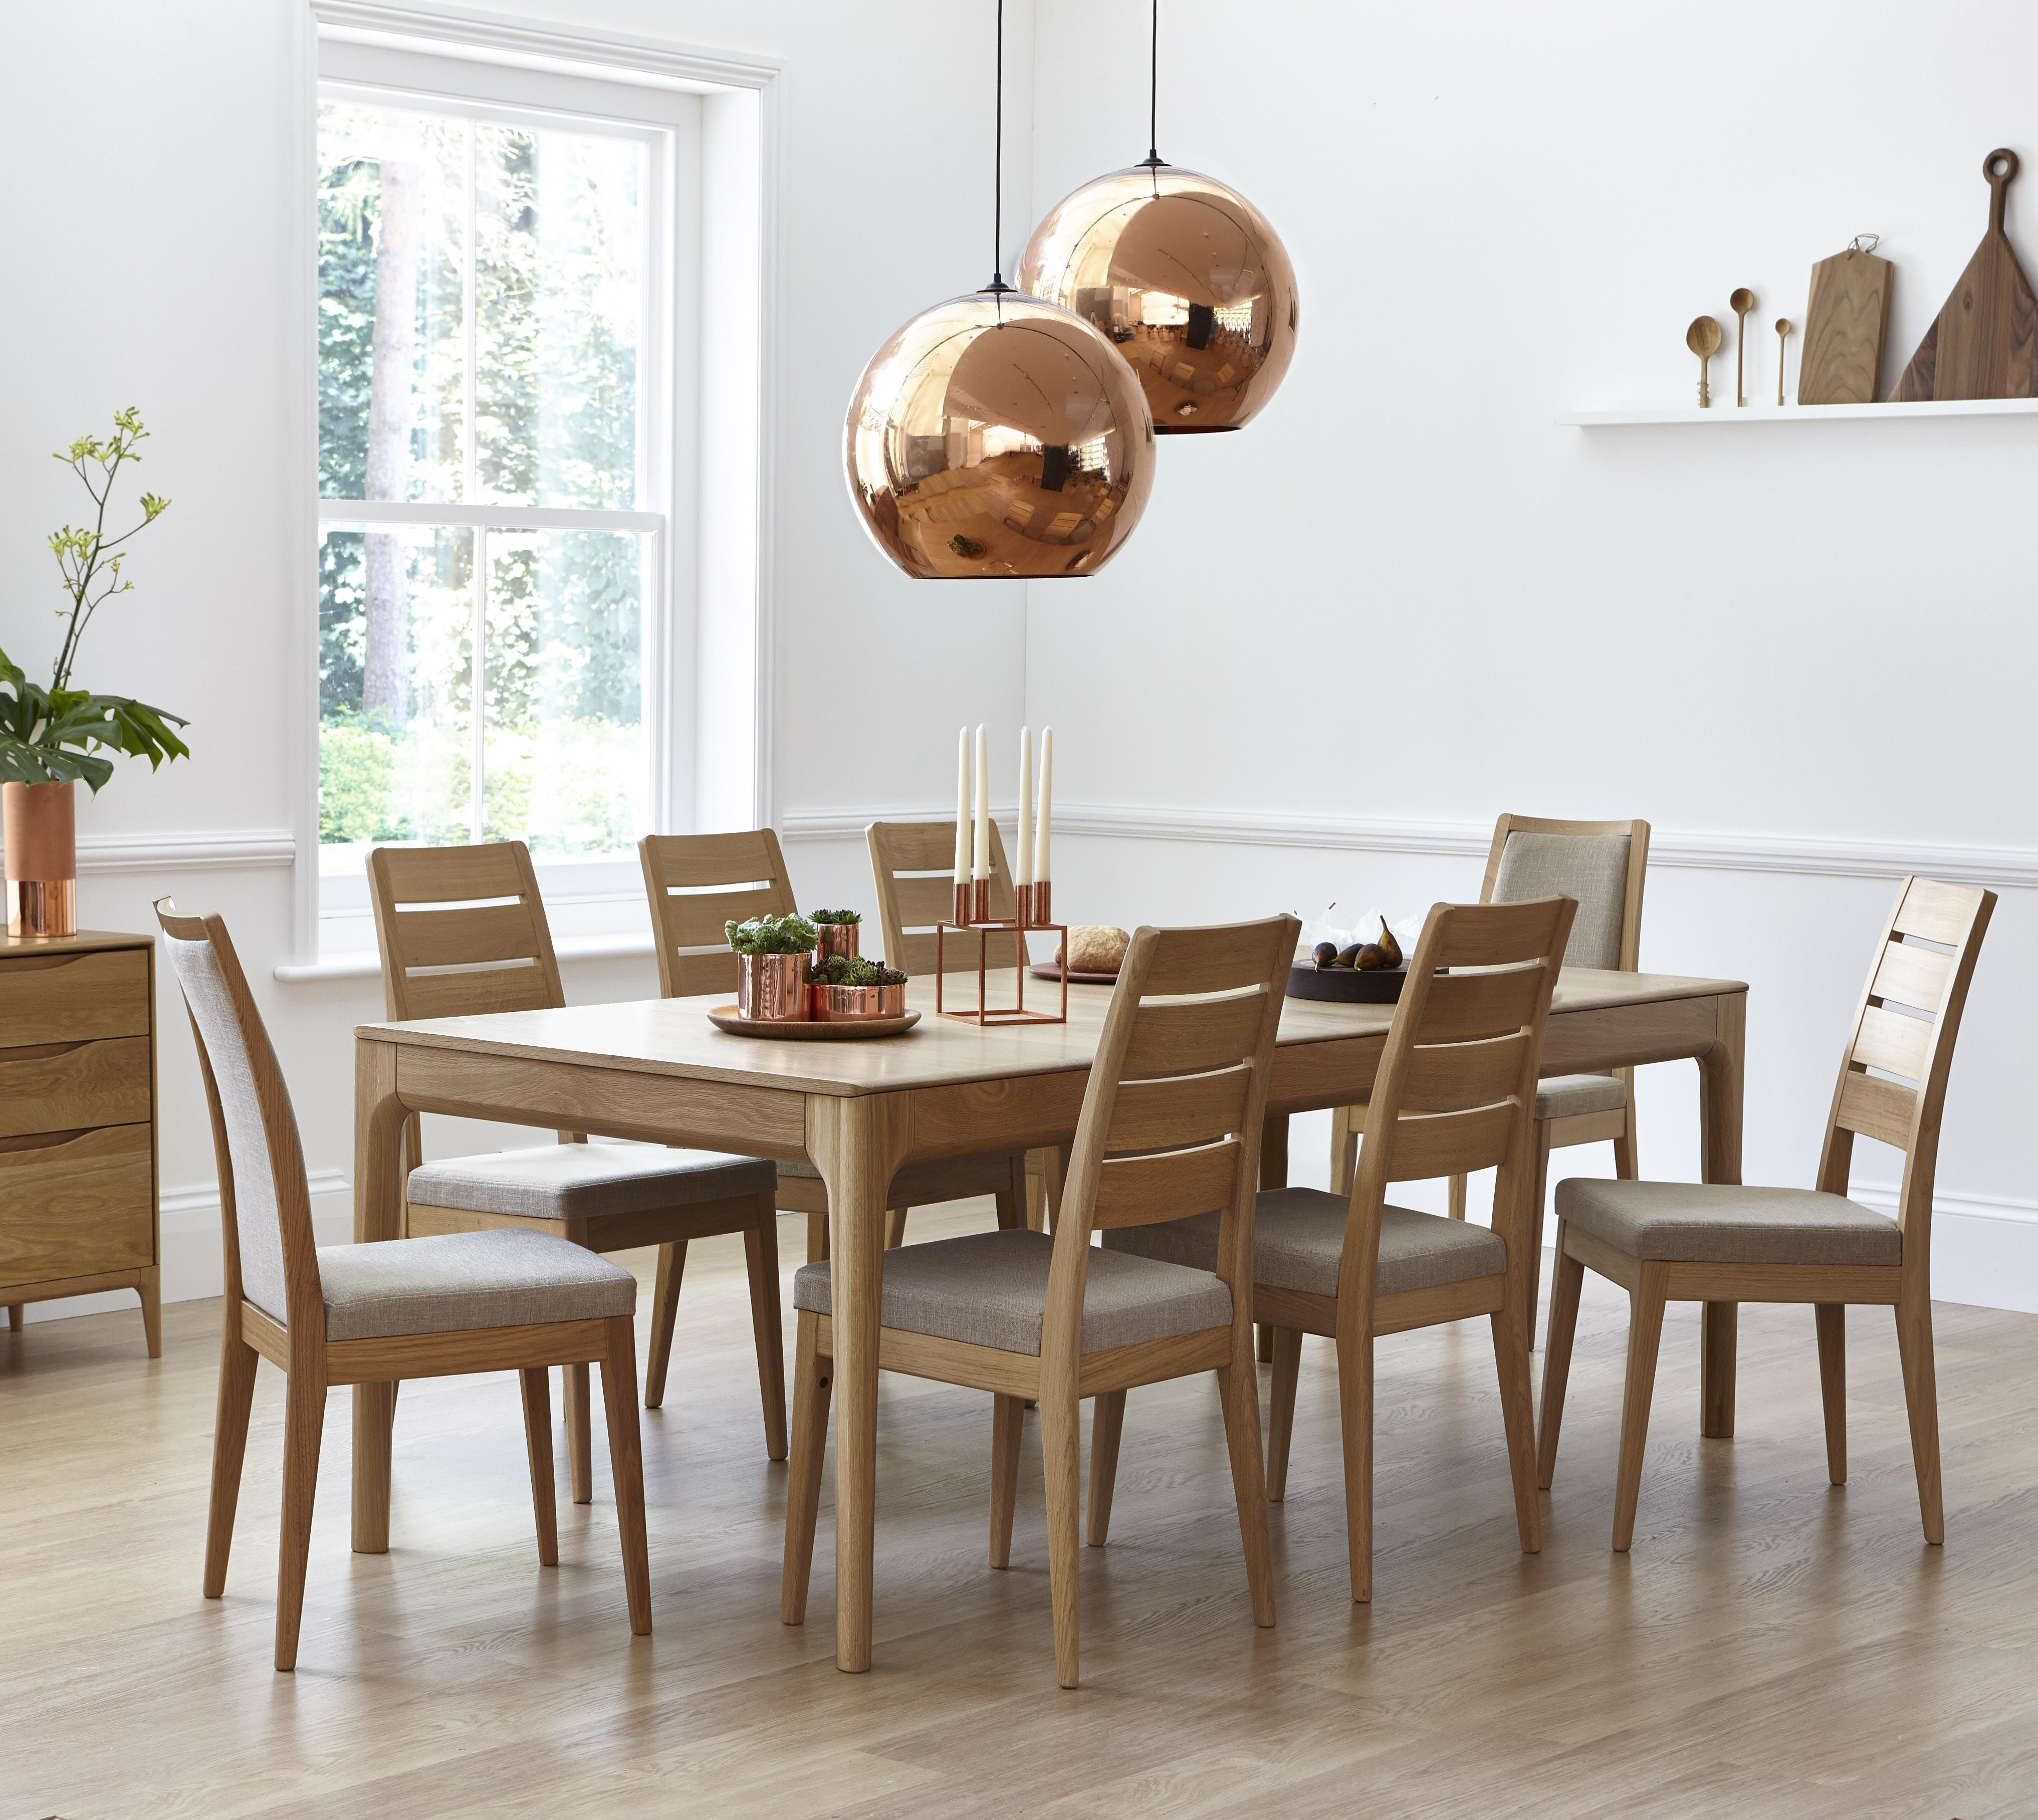 26+ Dining table and chairs furniture village Trend